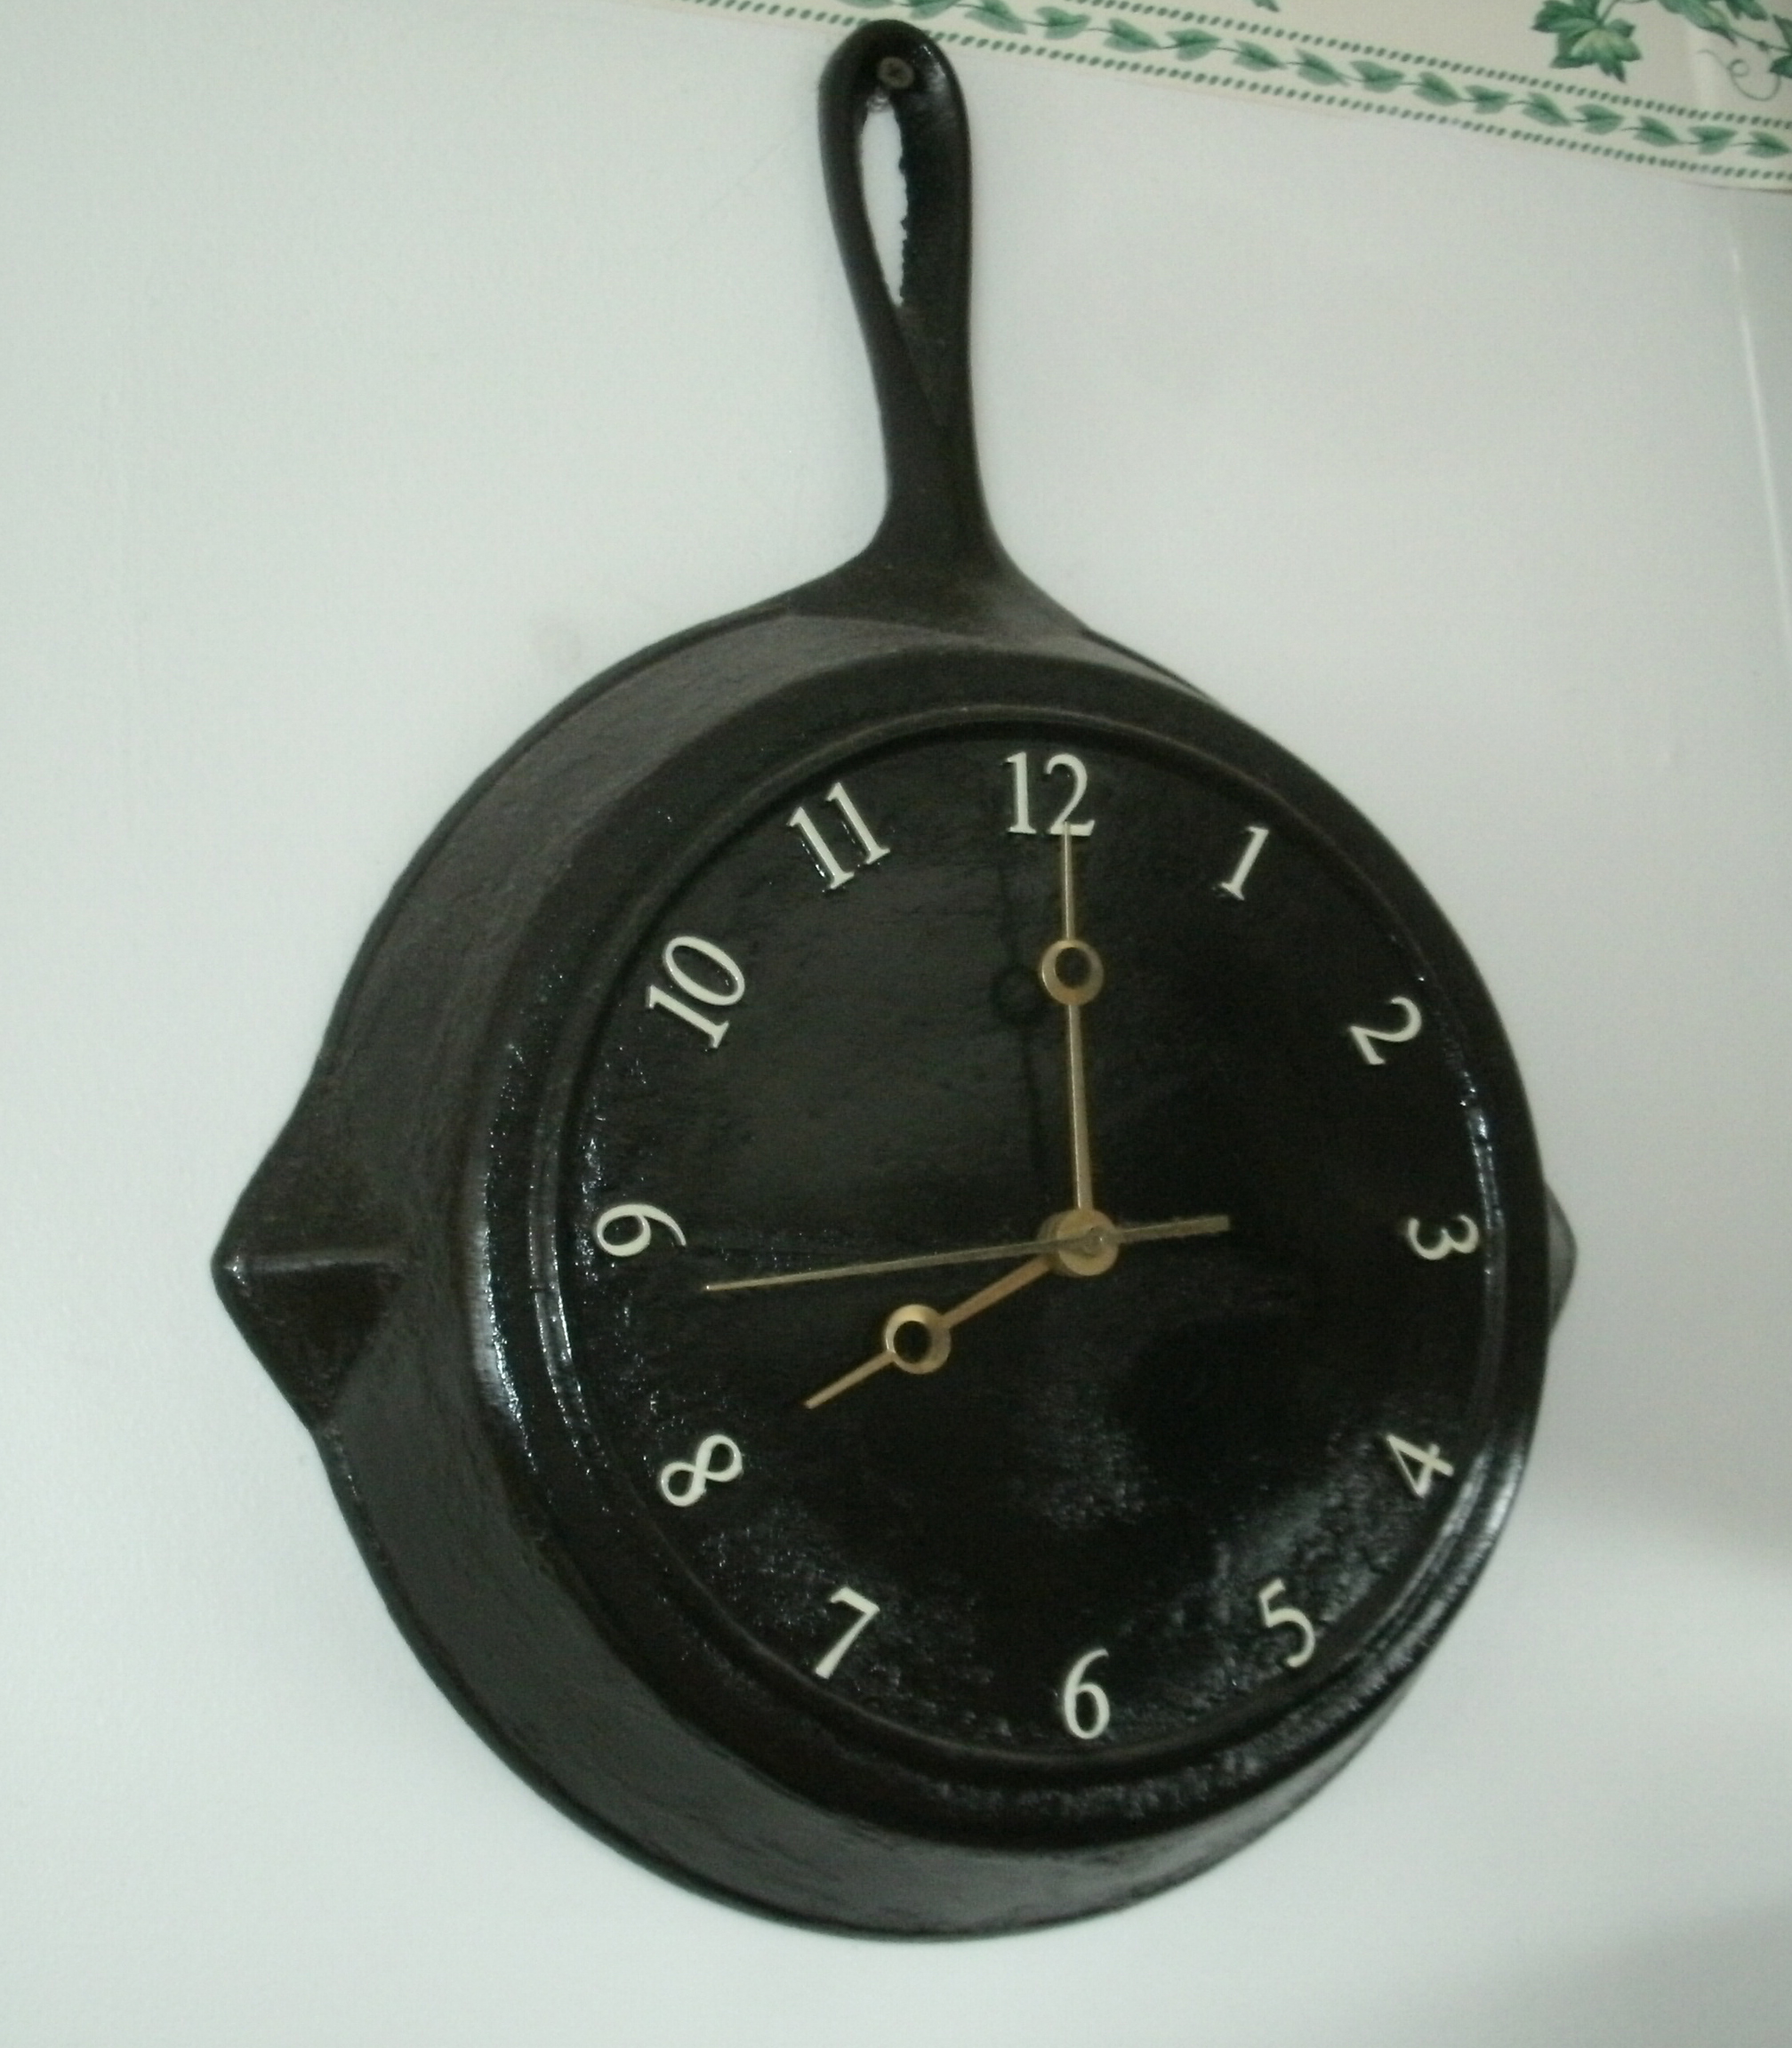 How to Make a Frying Pan Clock